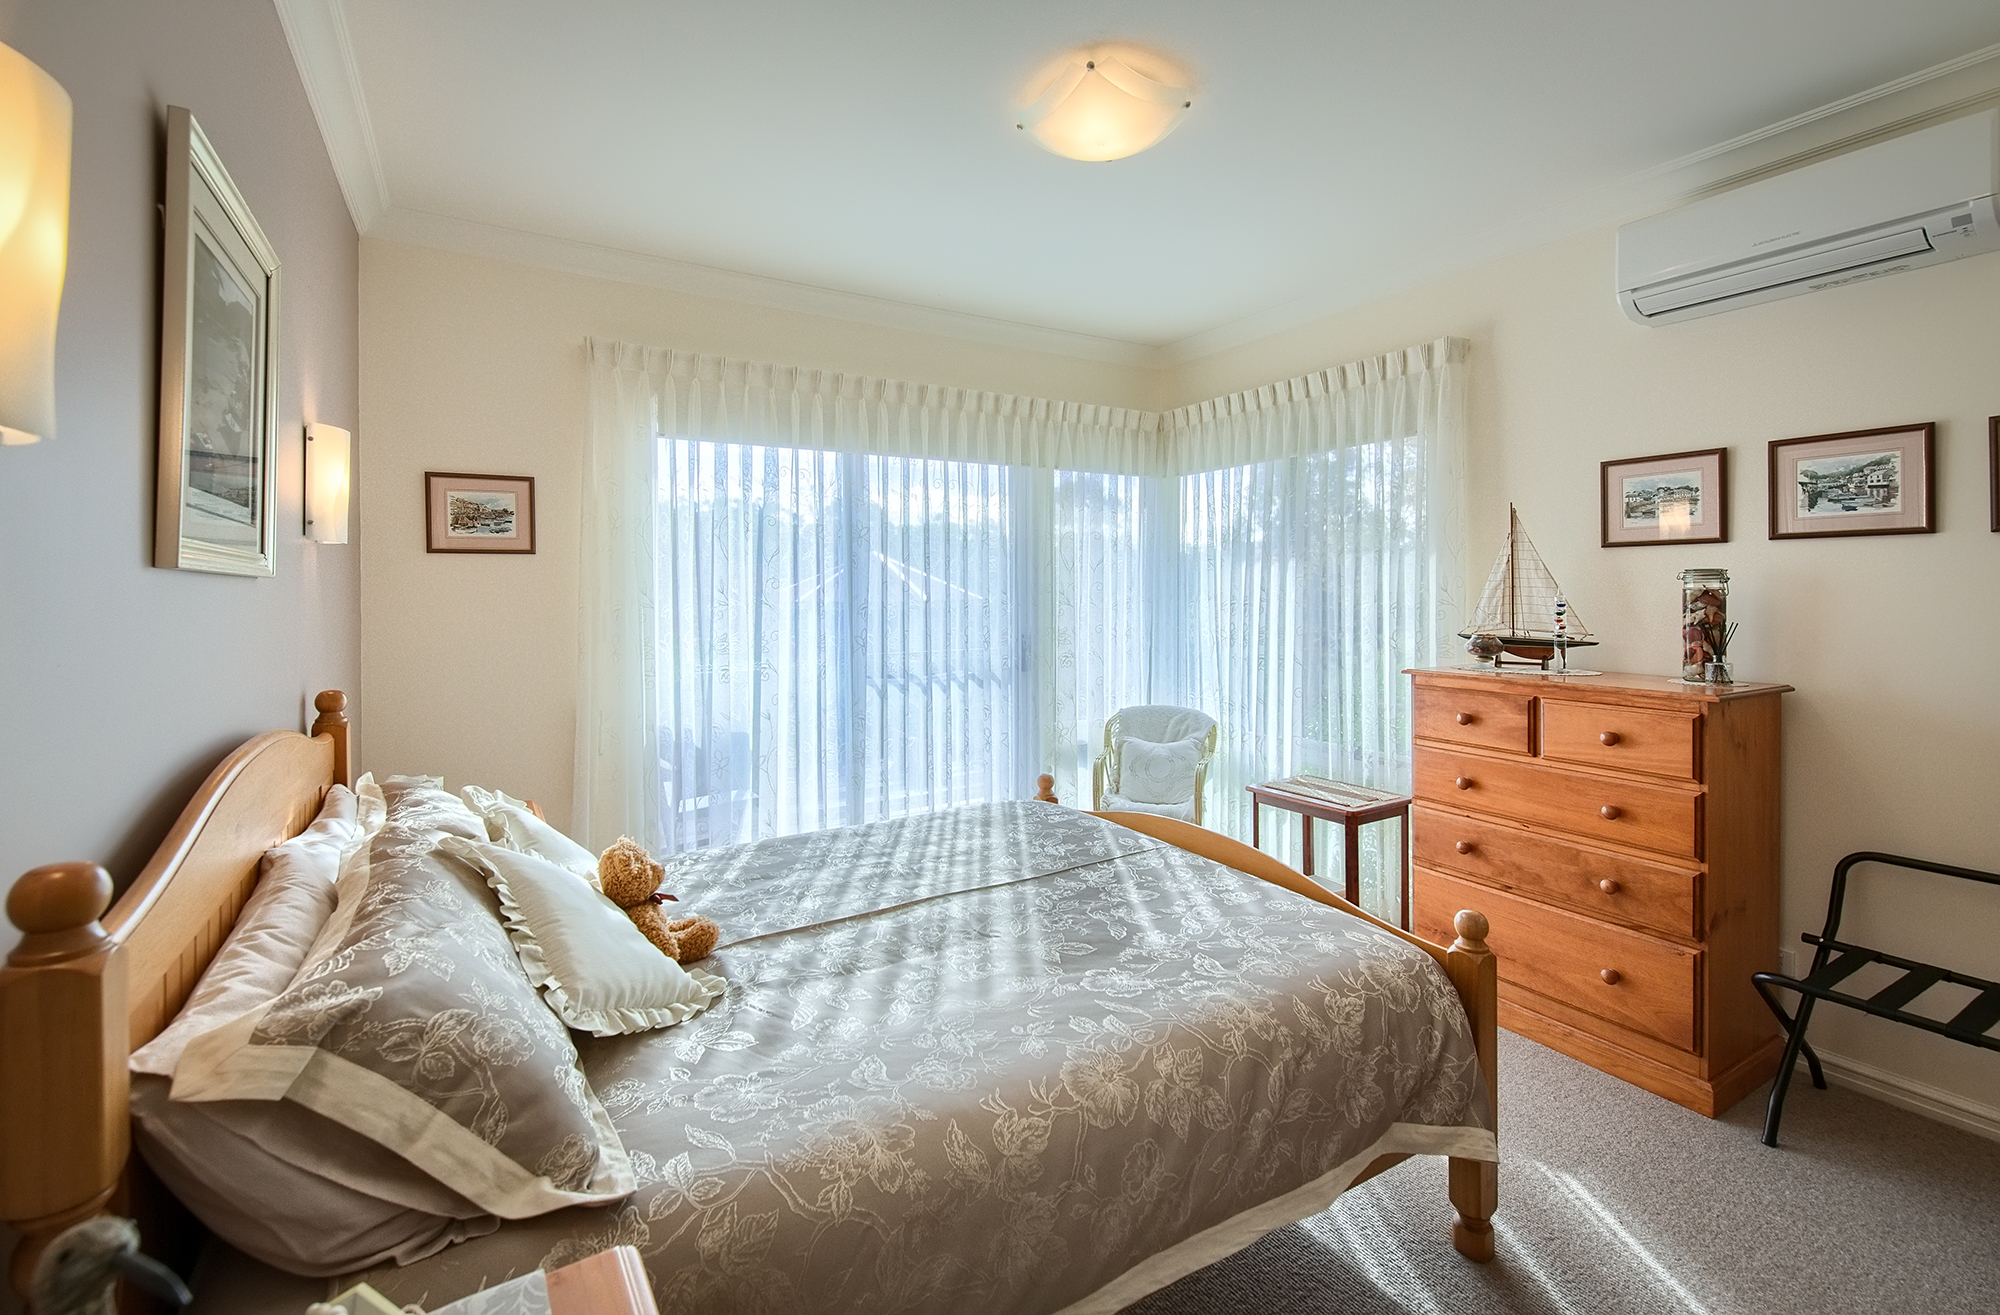 Luxurious BEDROOMS - Treat yourself to a peaceful nights rest after a day sightseeing in Amazing Albany